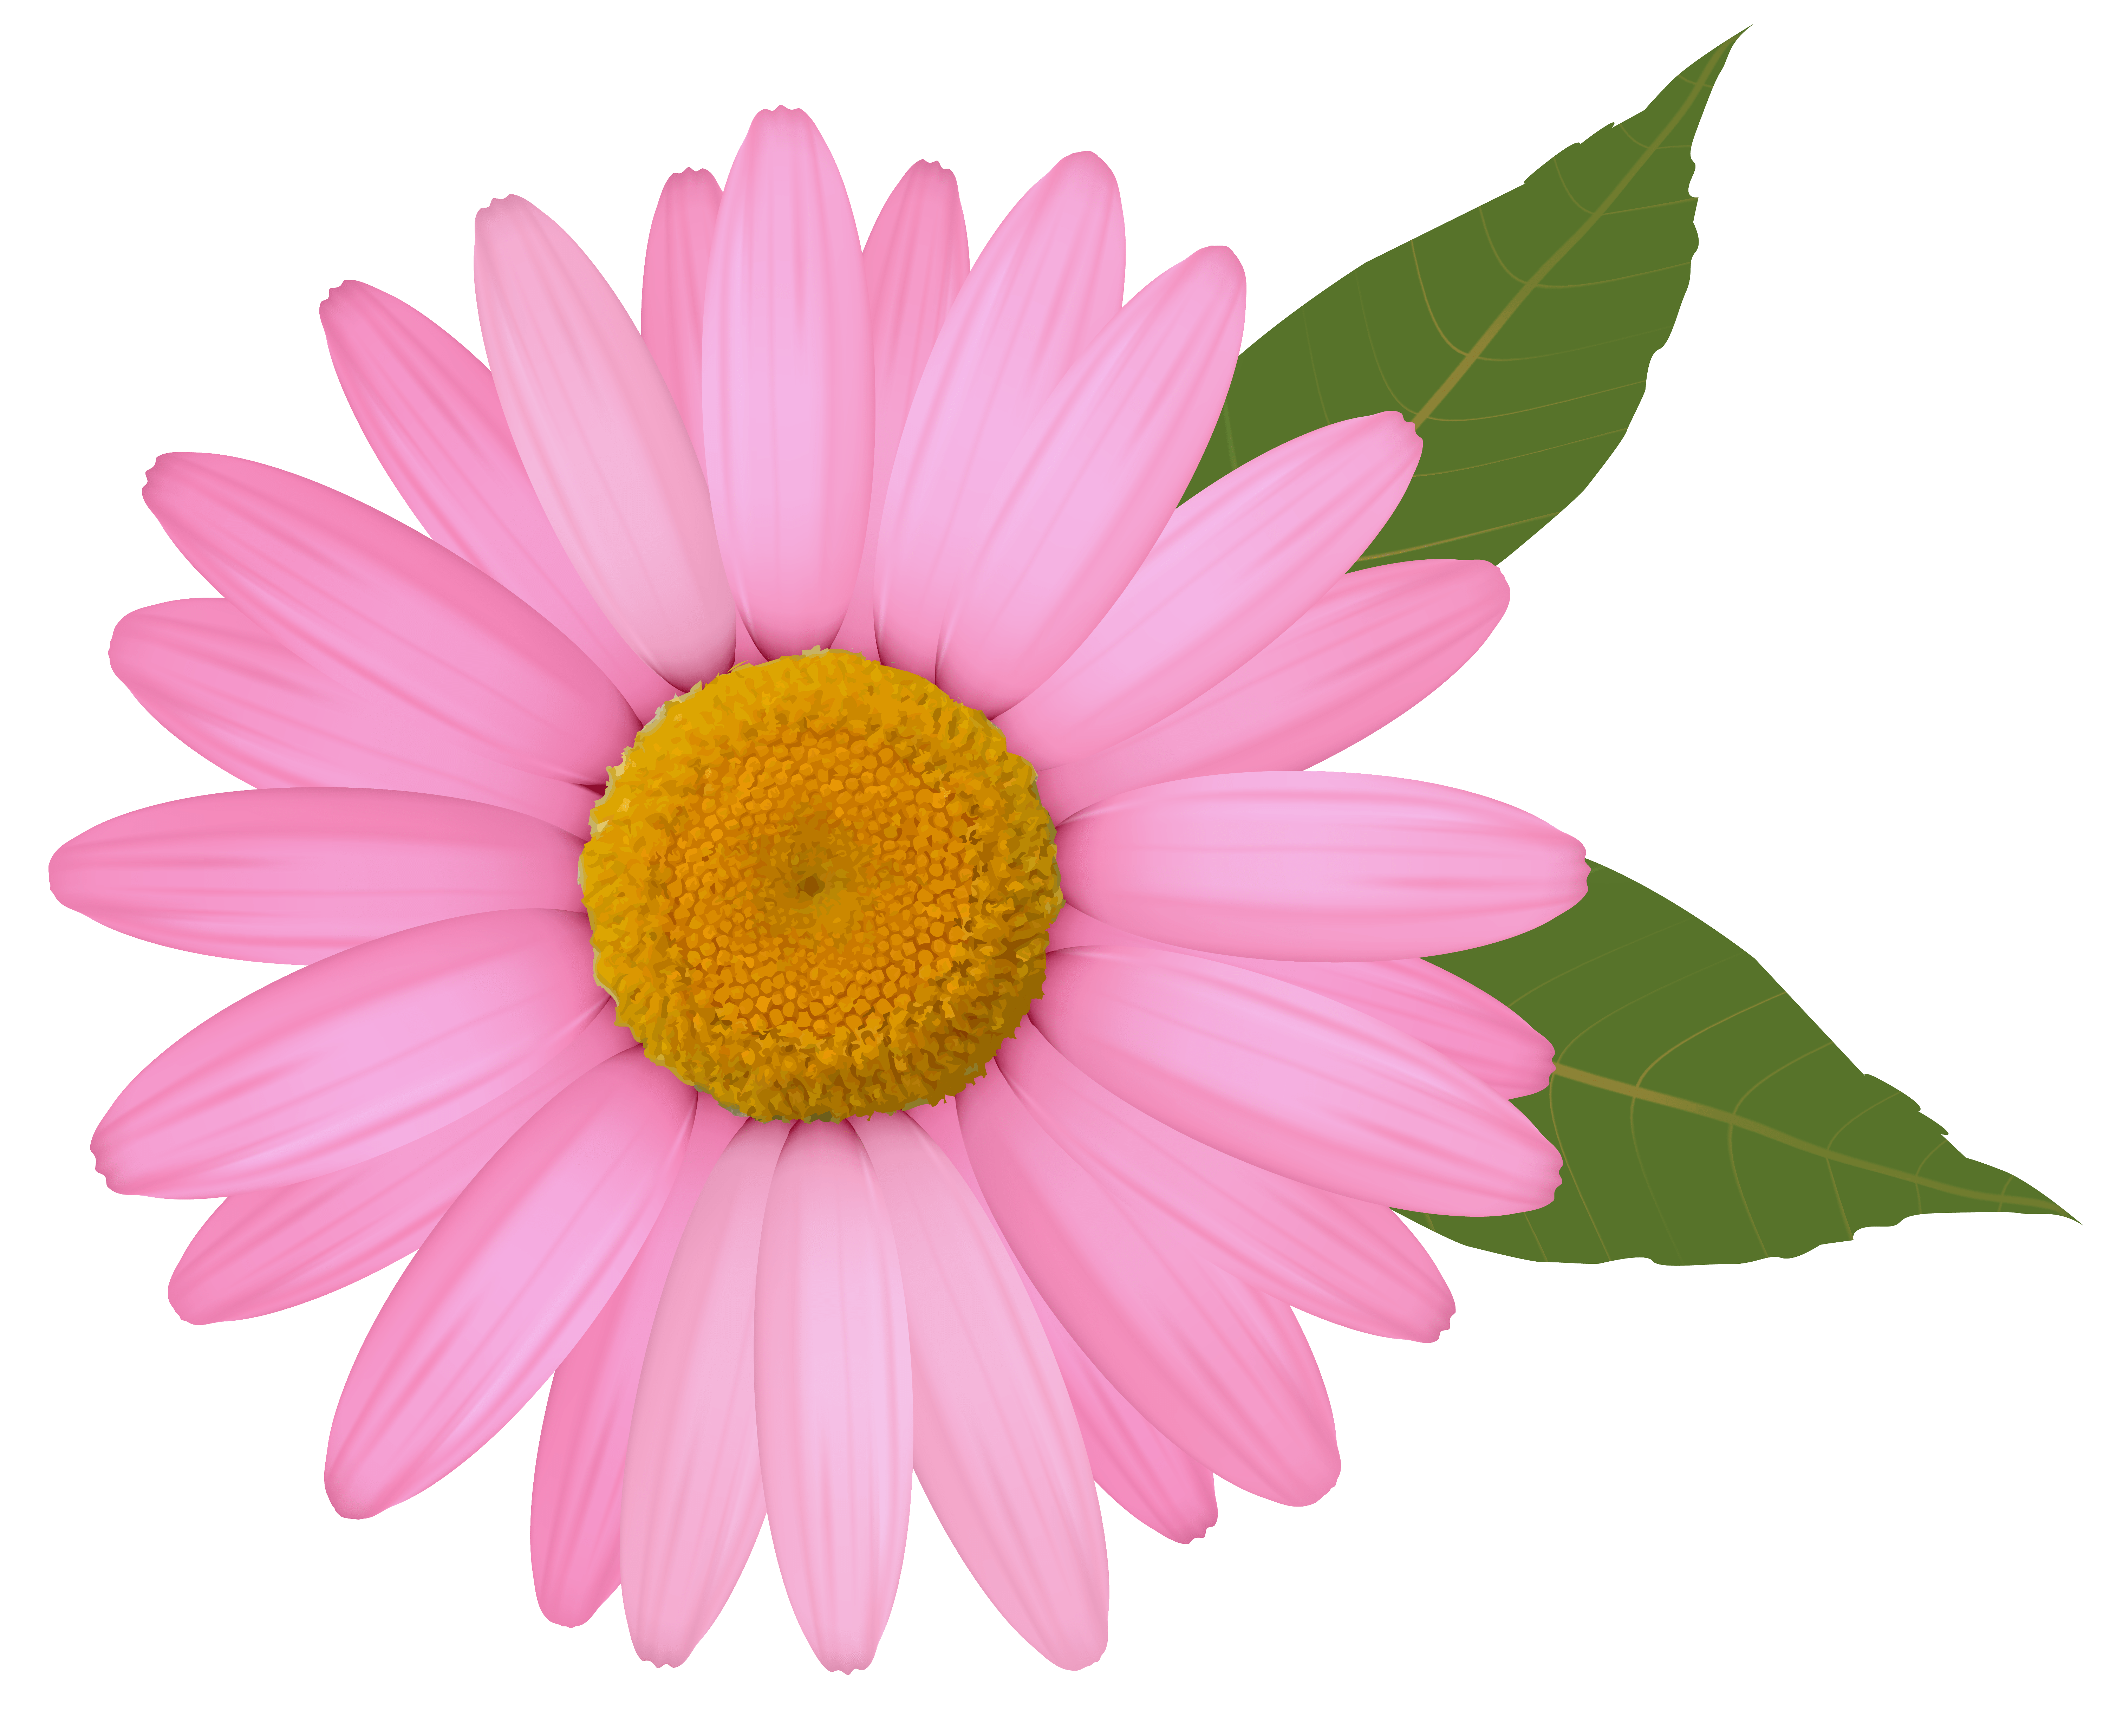 hight resolution of pink daisy png clipart image